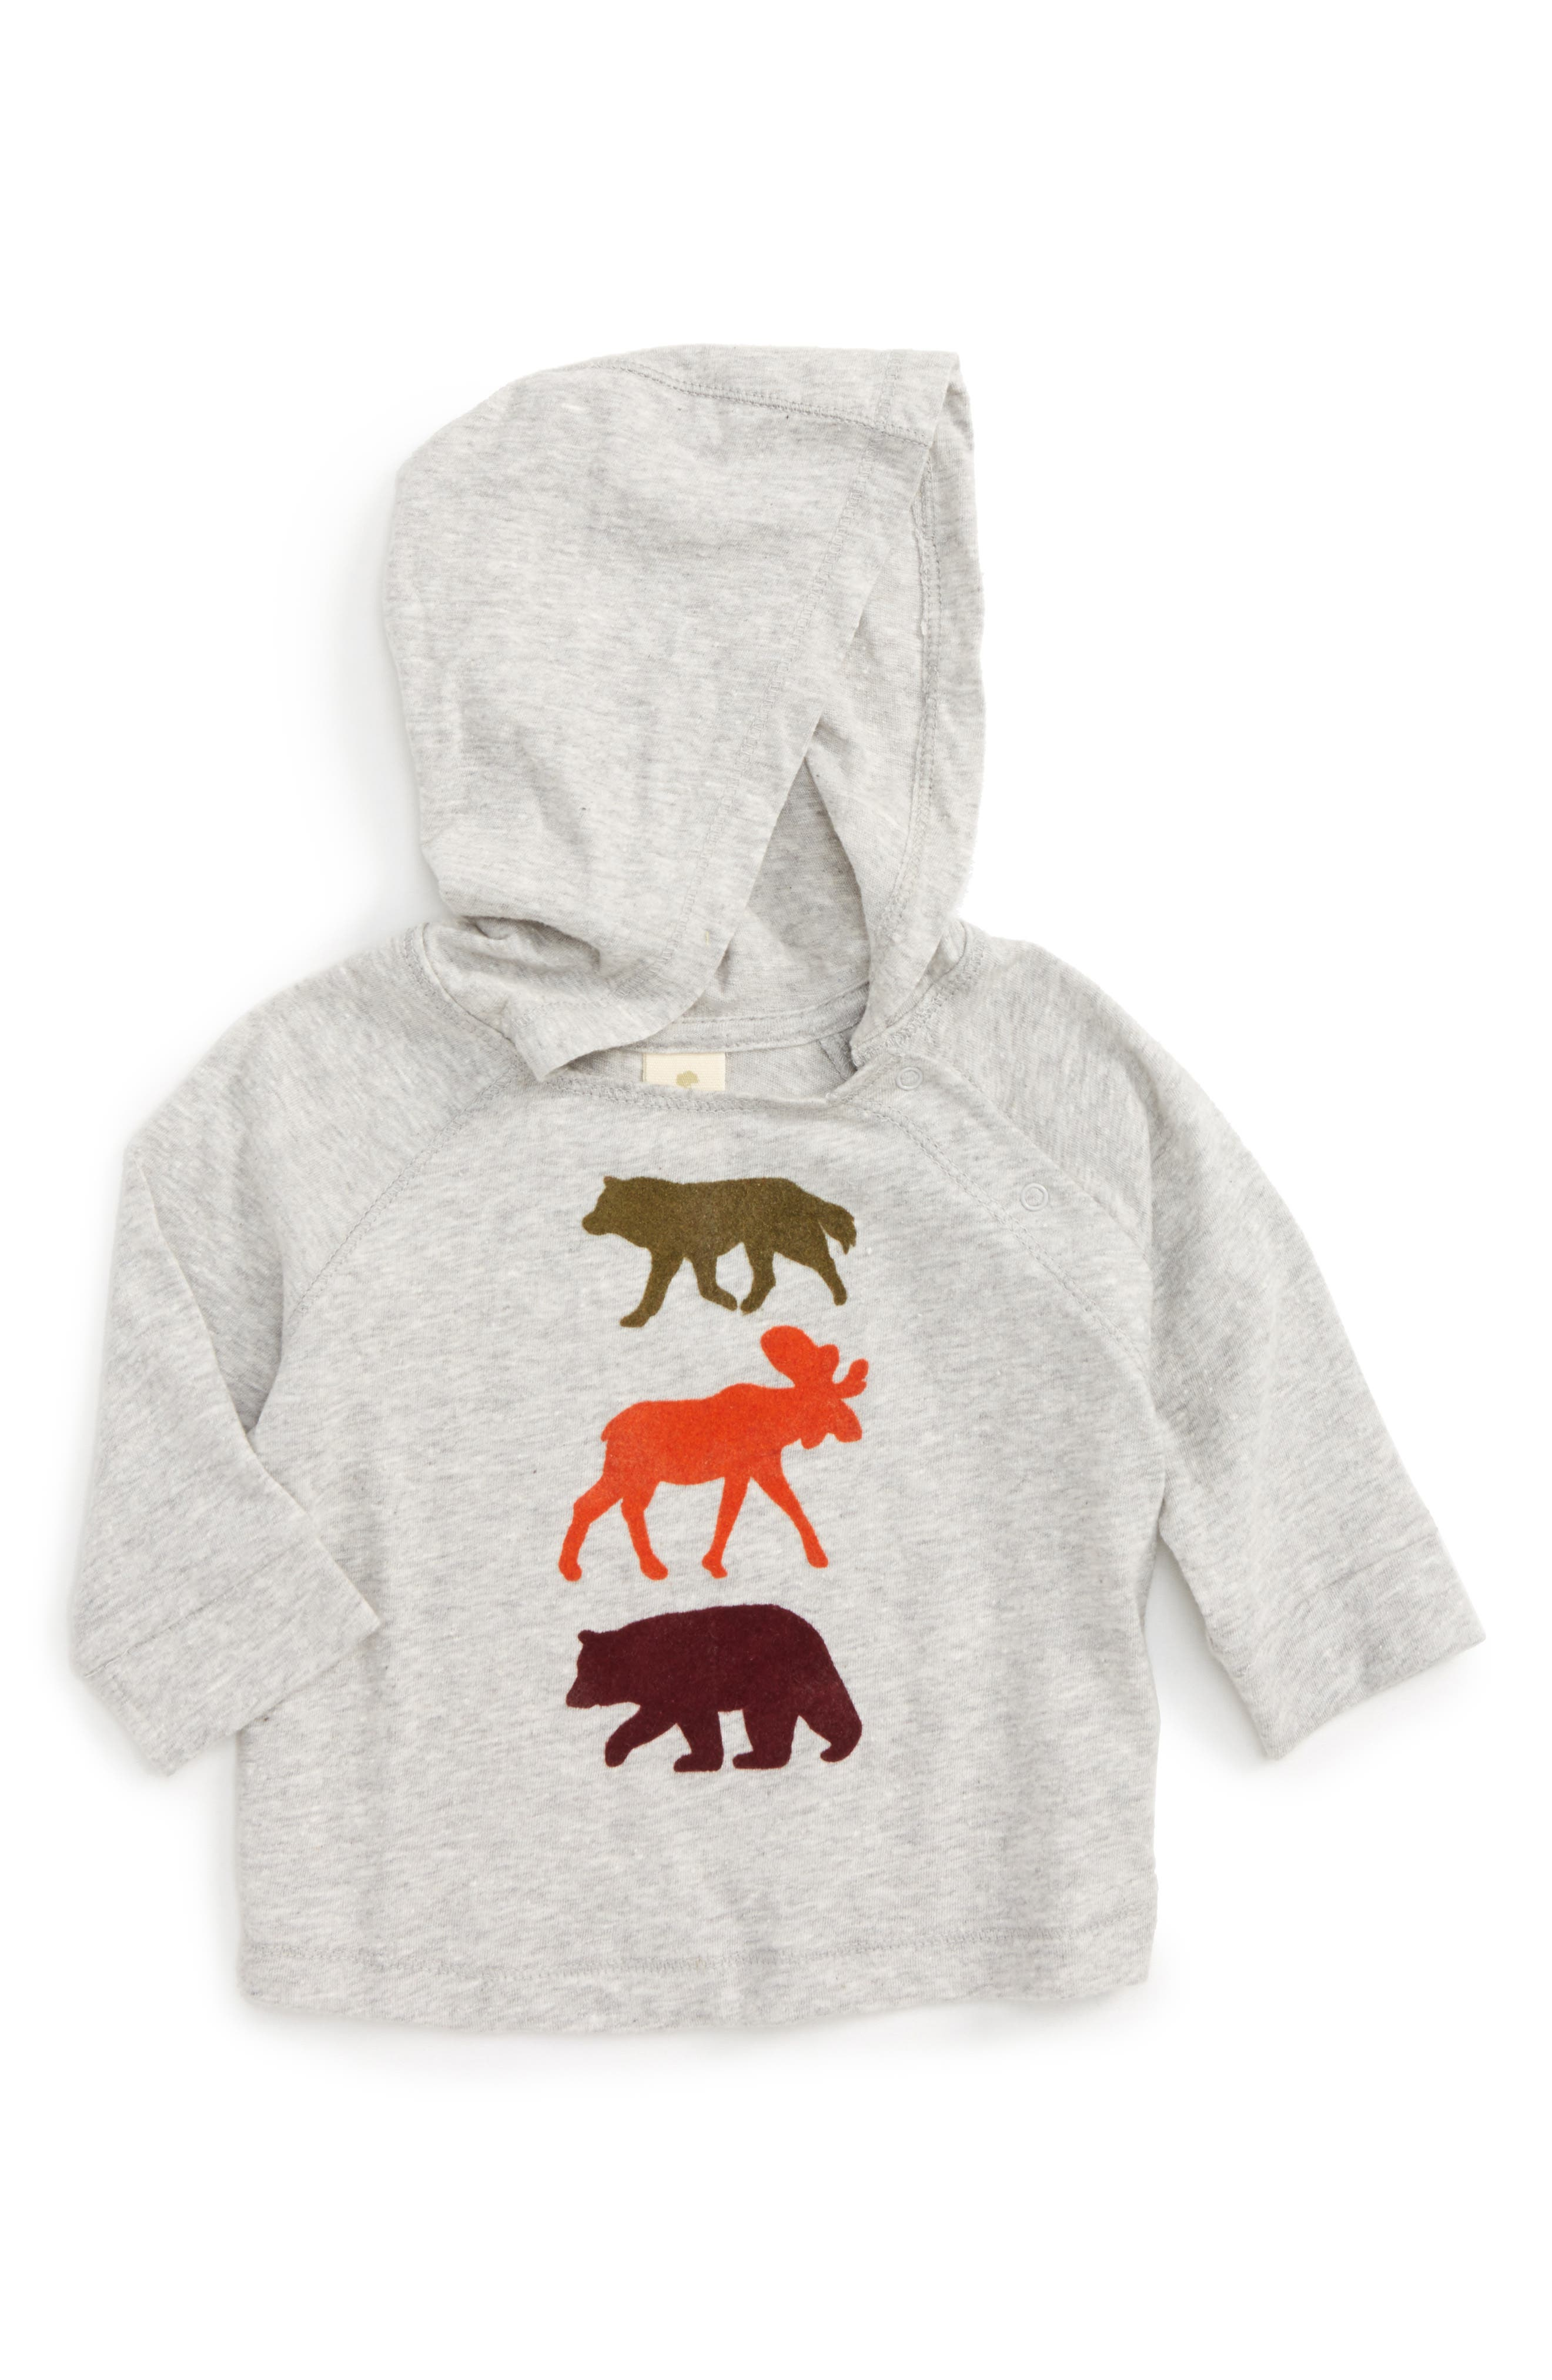 Hooded T-Shirt,                         Main,                         color, Grey Ash Heather Animals